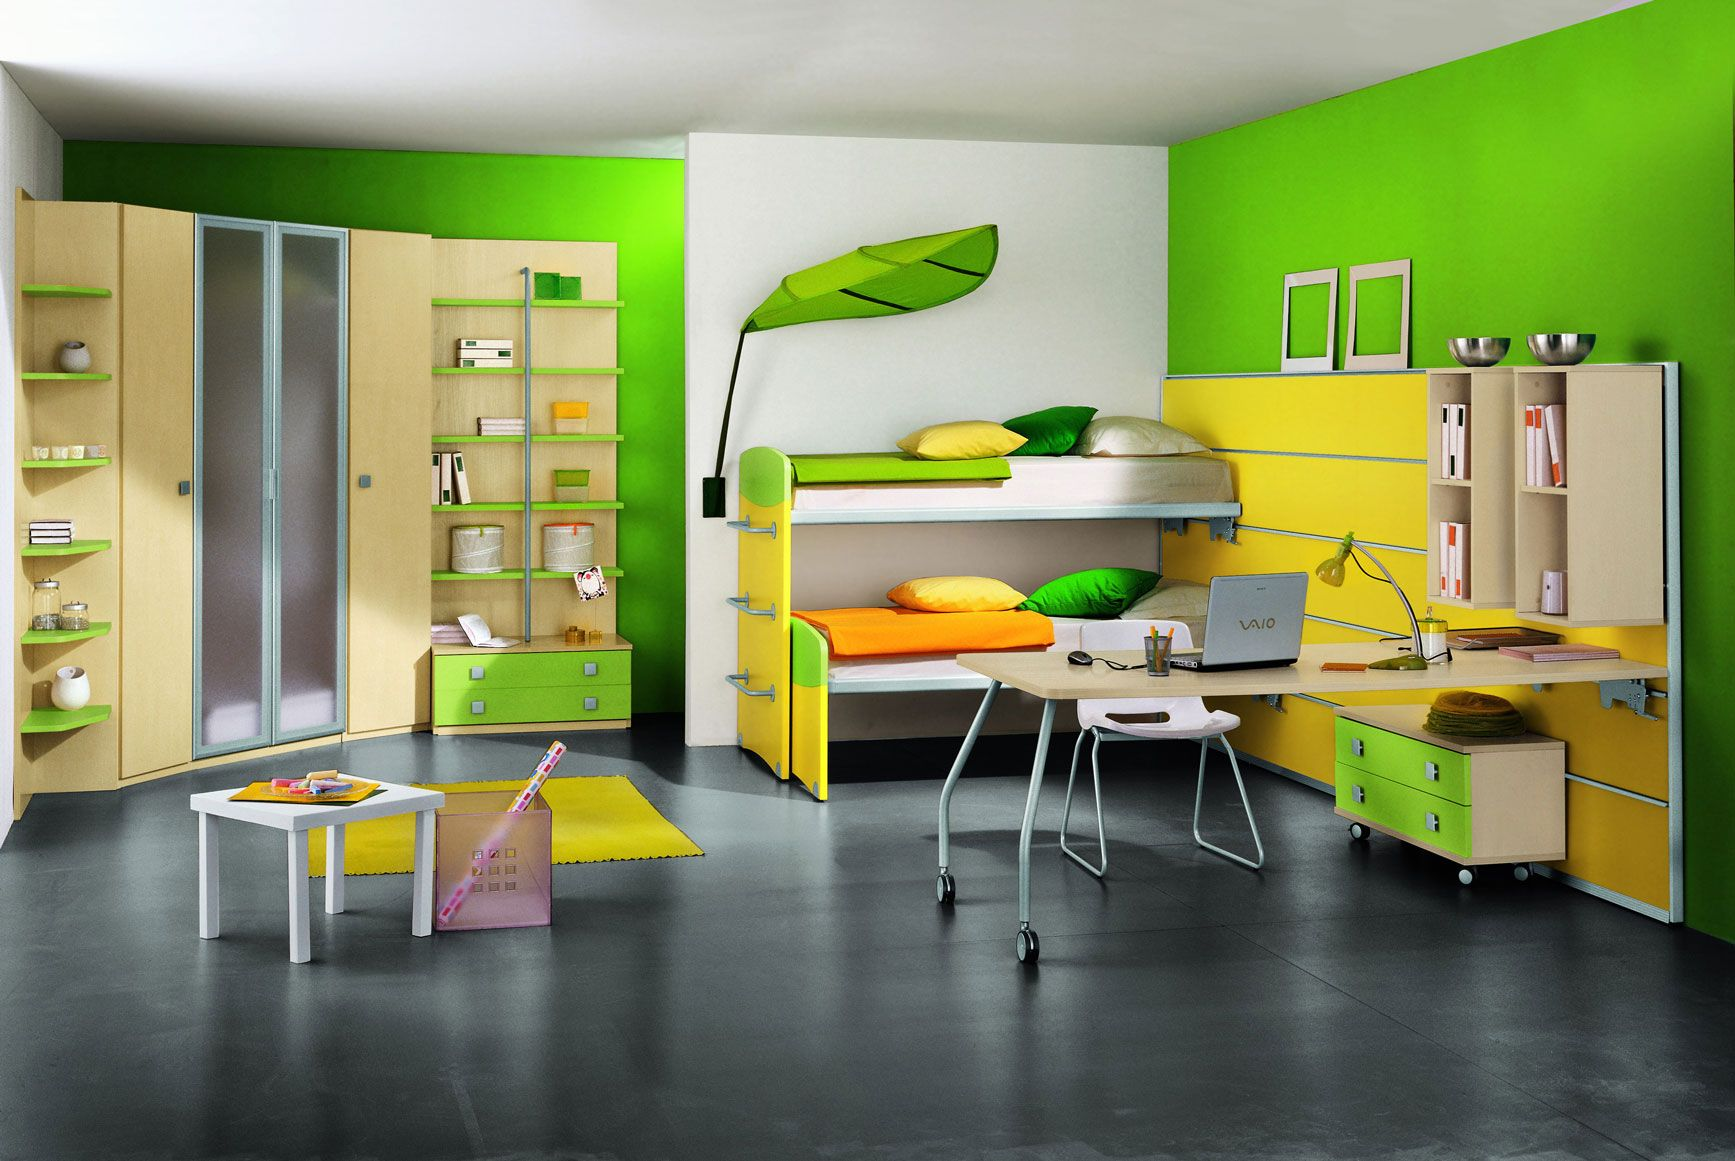 Girls Bedroom Green ideas,kids room painting ideas,kids bedroom paint ideas,painting